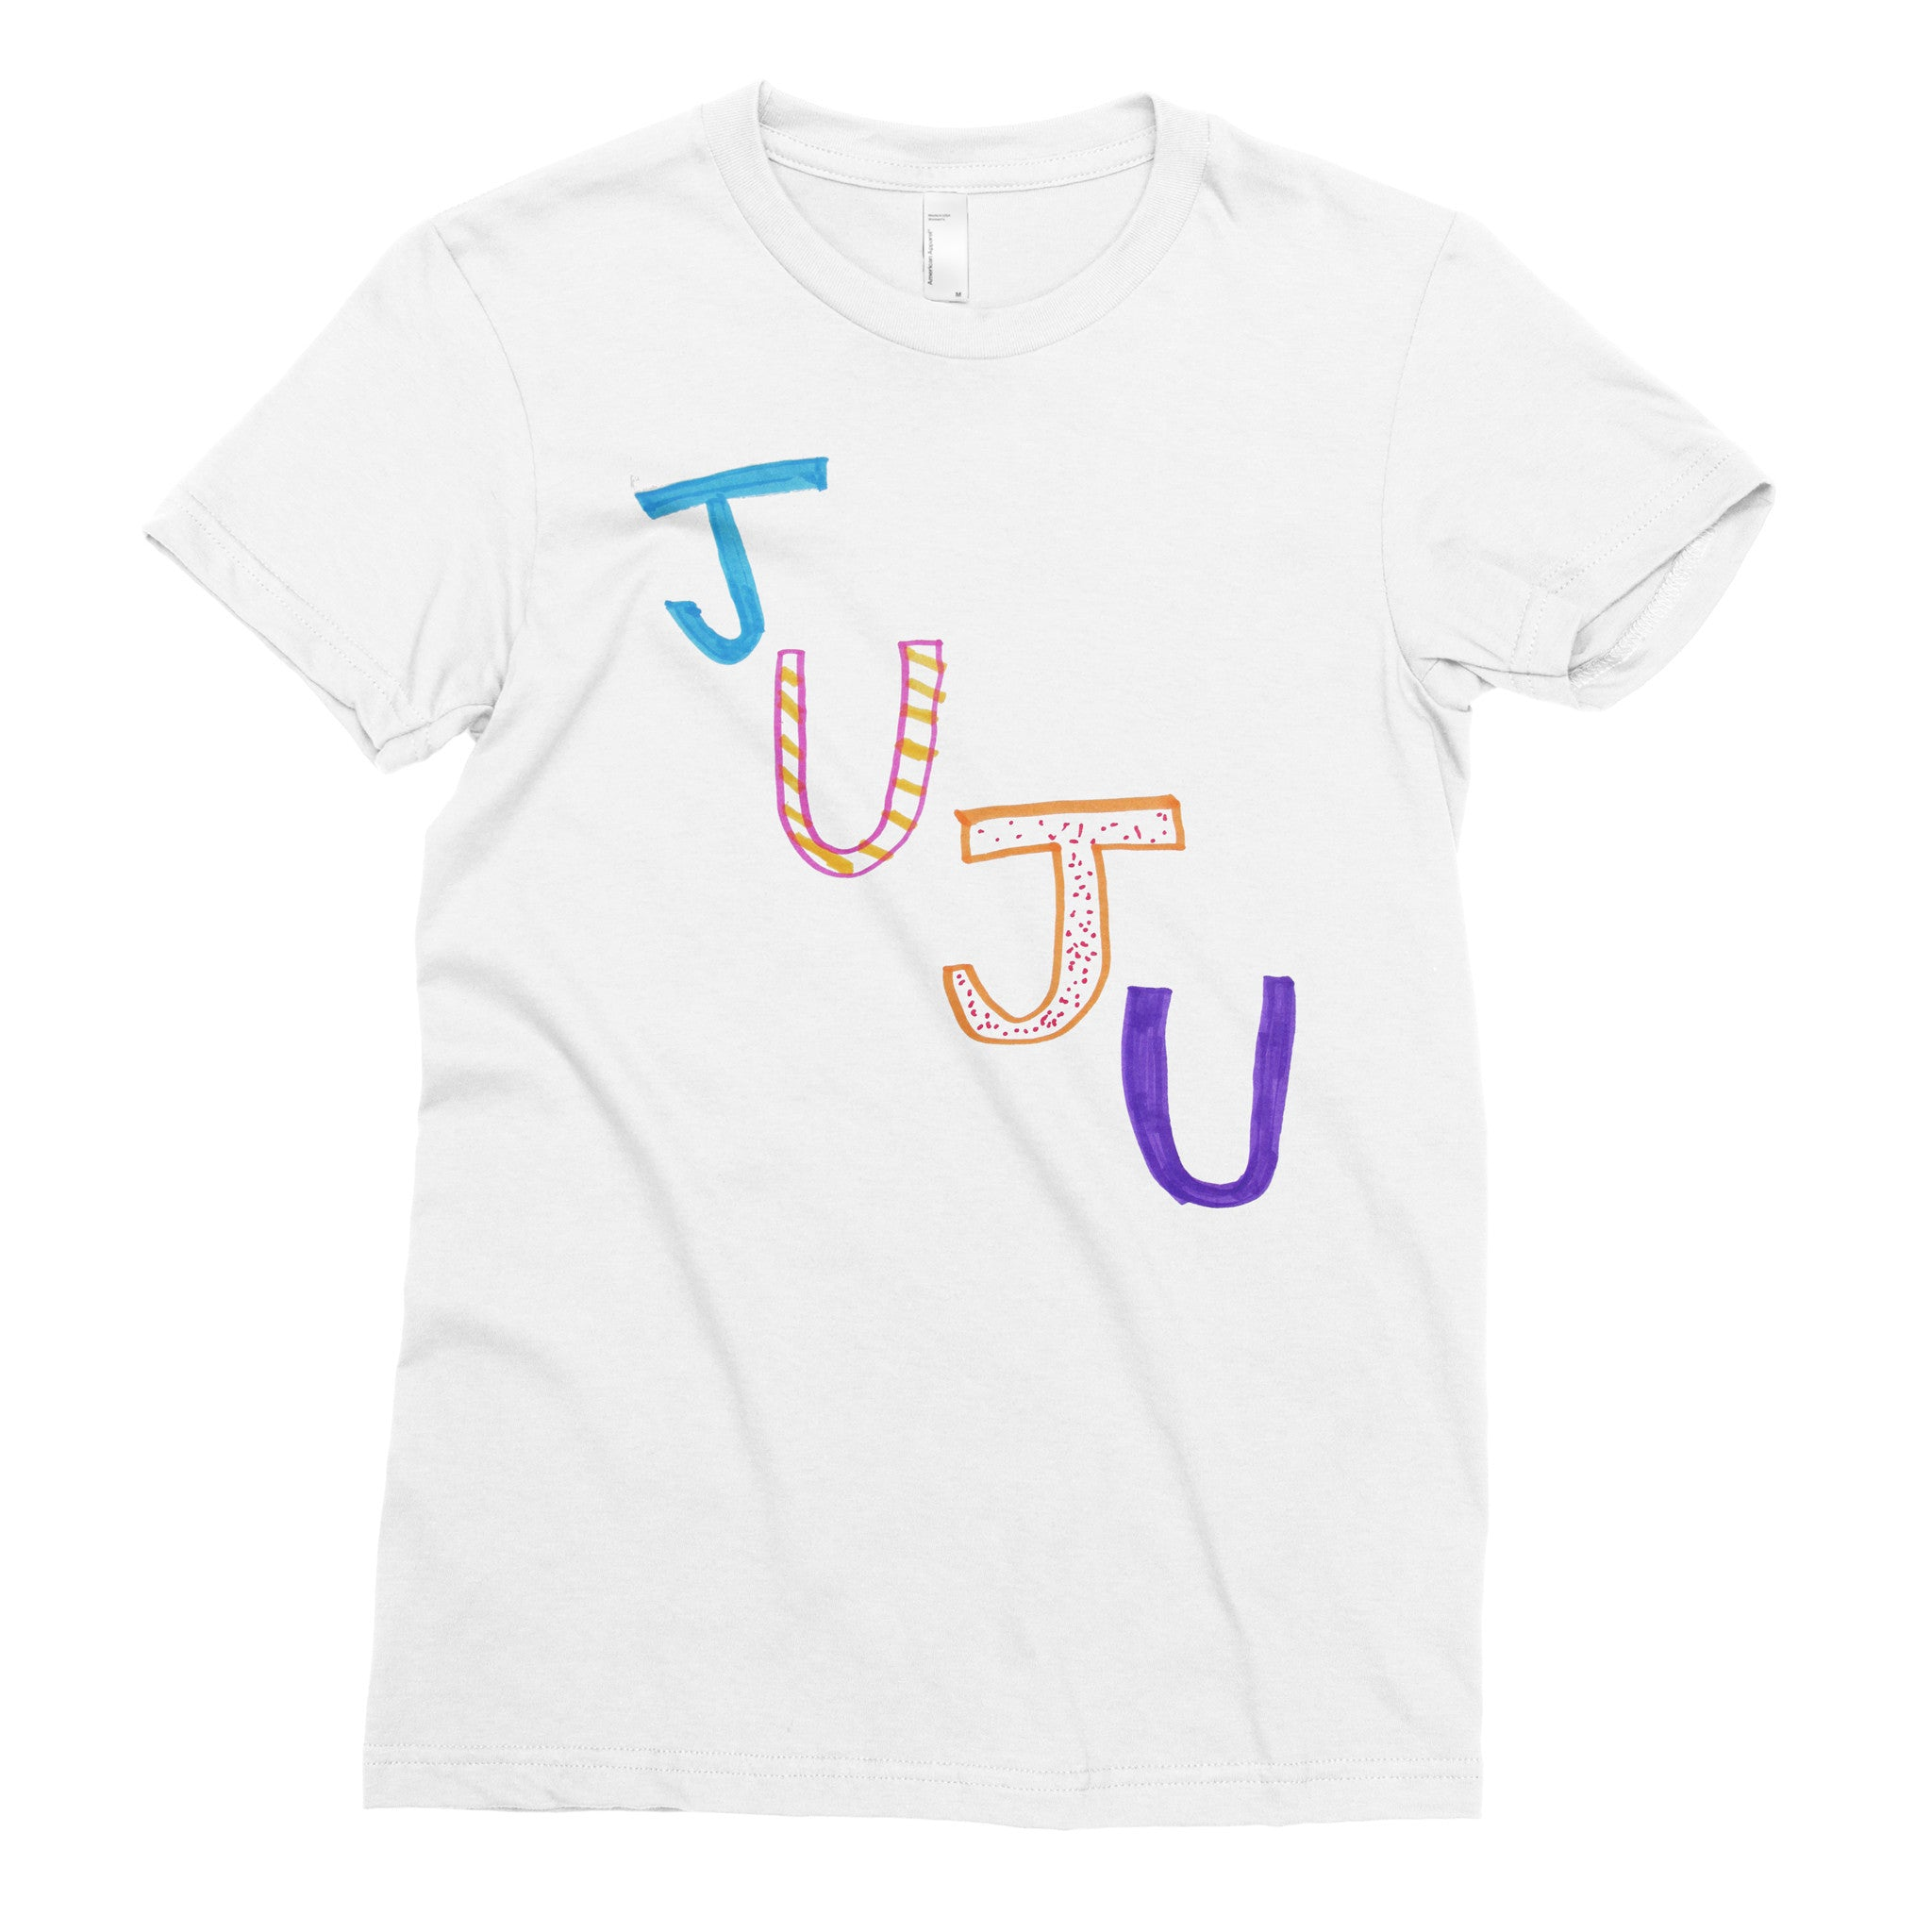 Juju - Adult T-shirt - Rightside Shirts